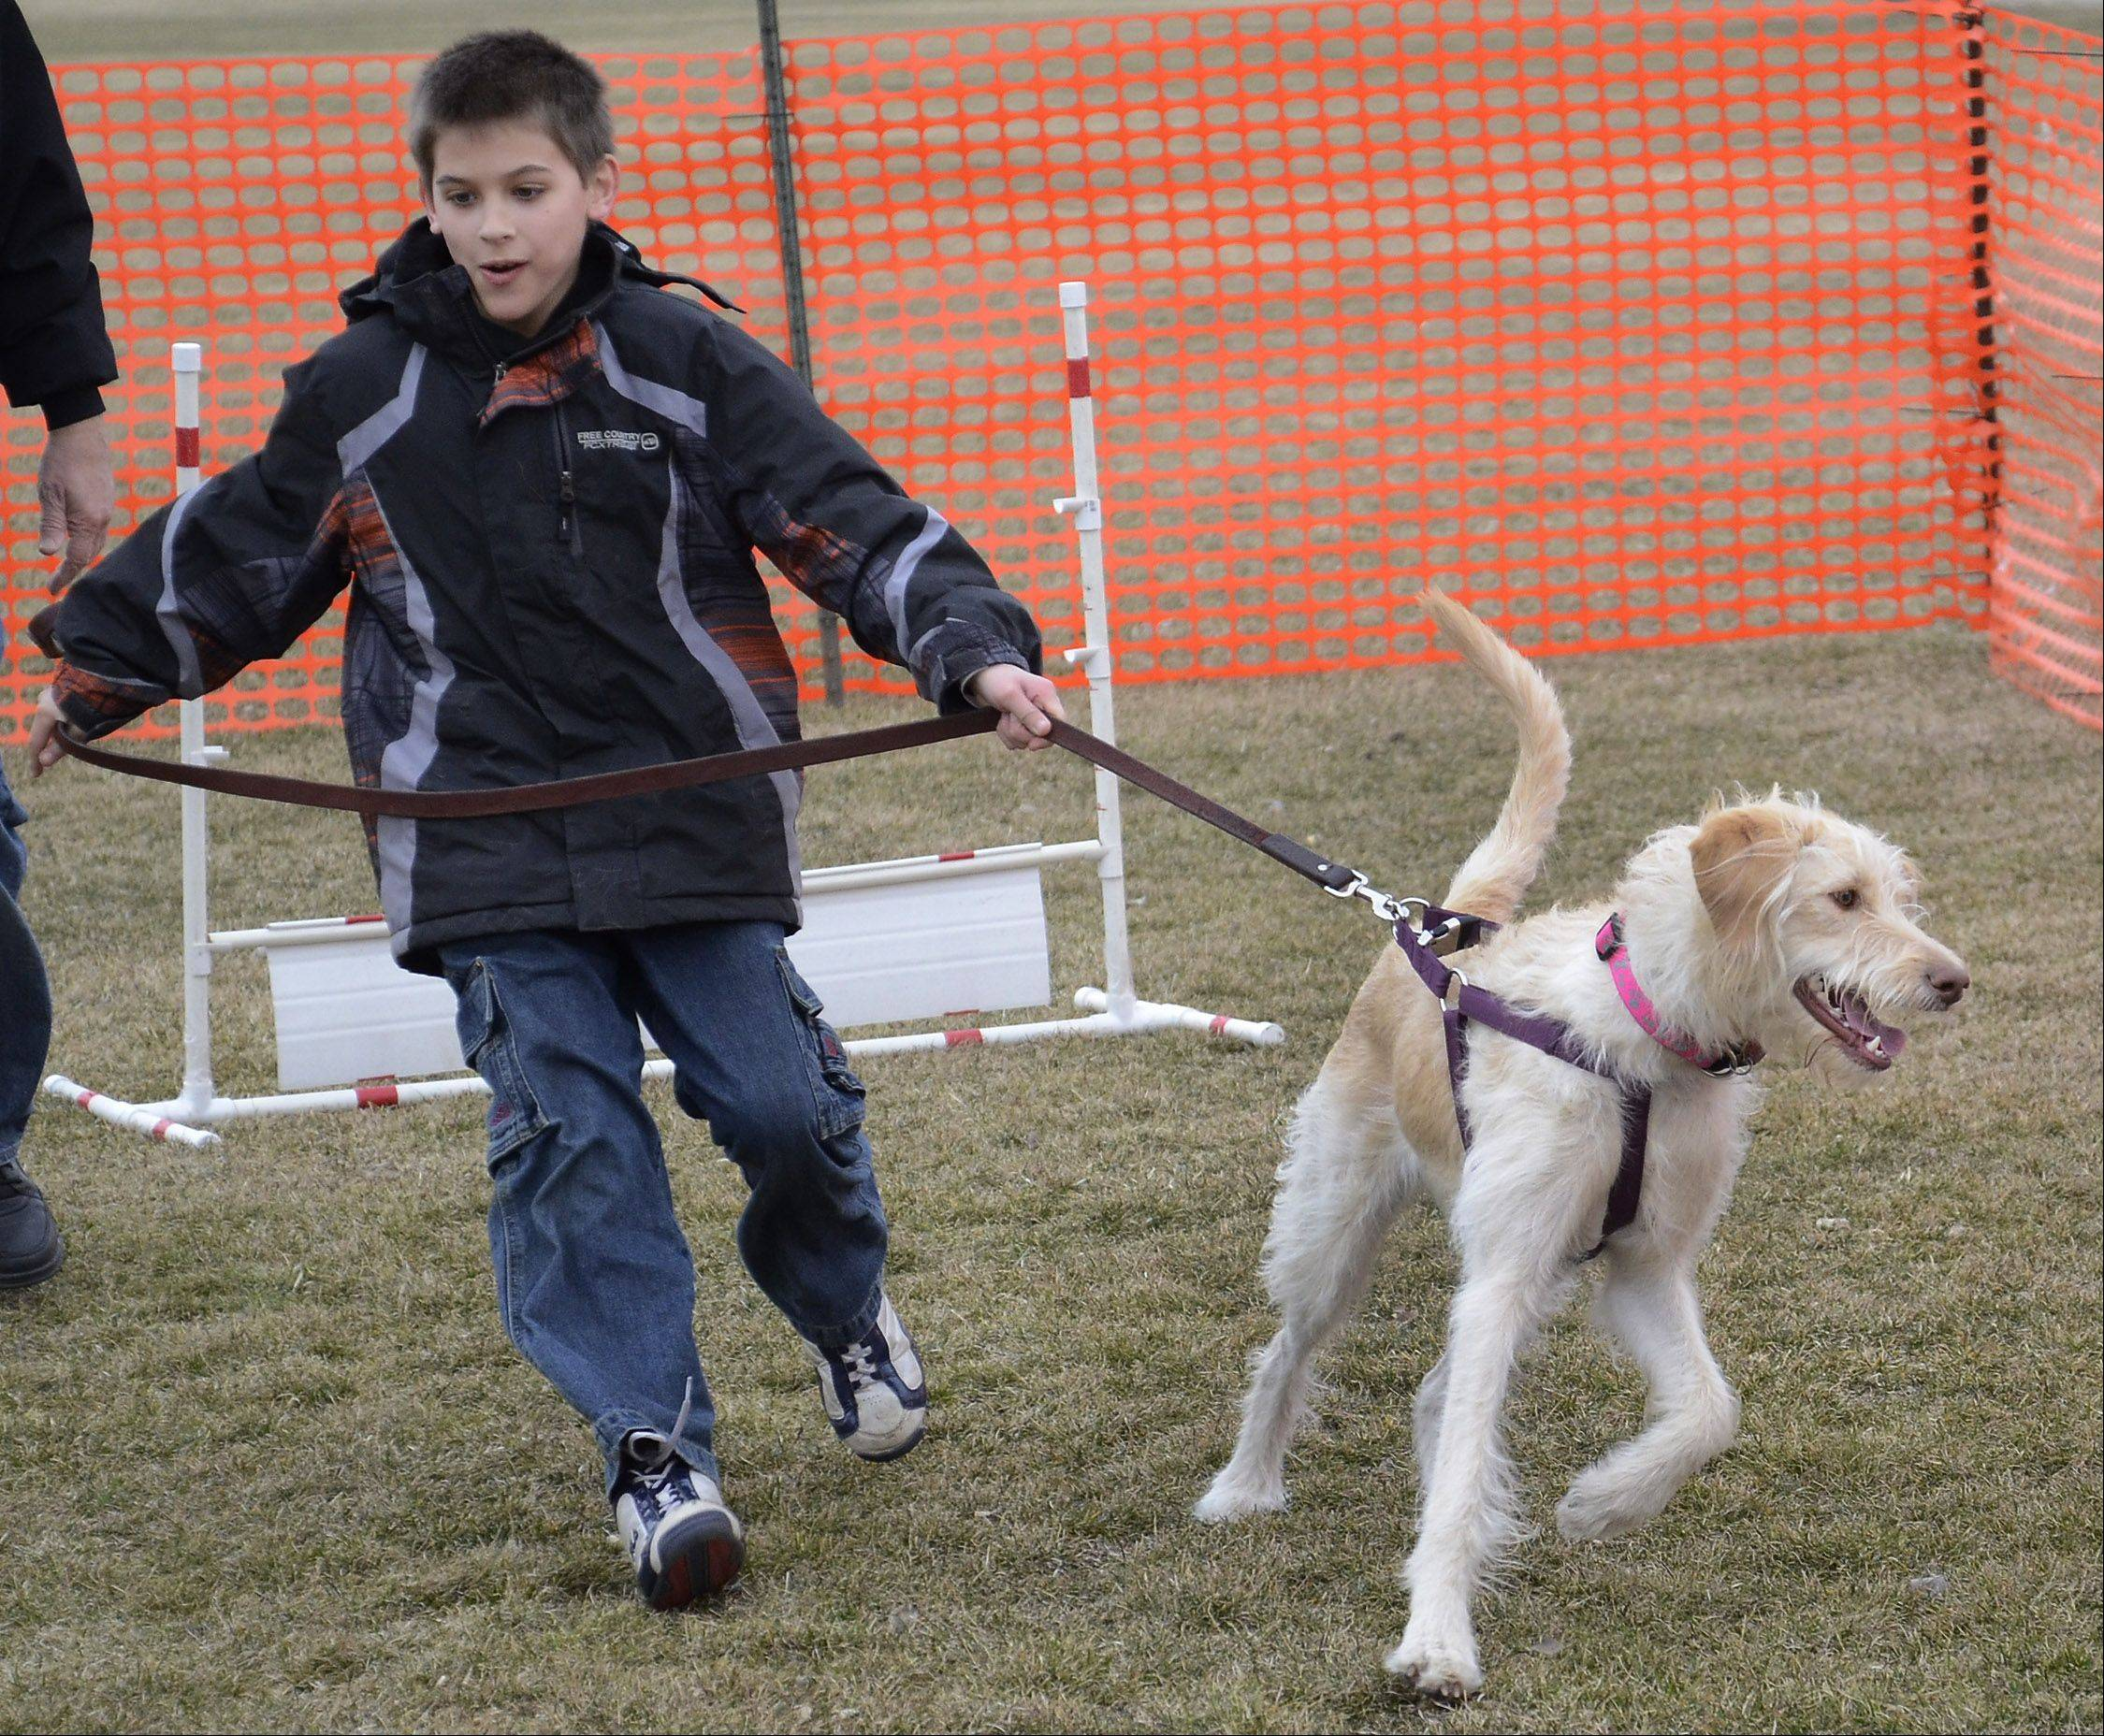 Tristan Elkin of Schaumburg has a firm grip on his Labradoodle Sadie while on the obstacle course during the Canine Carnival at the Meineke Recreation Center in Schaumburg.